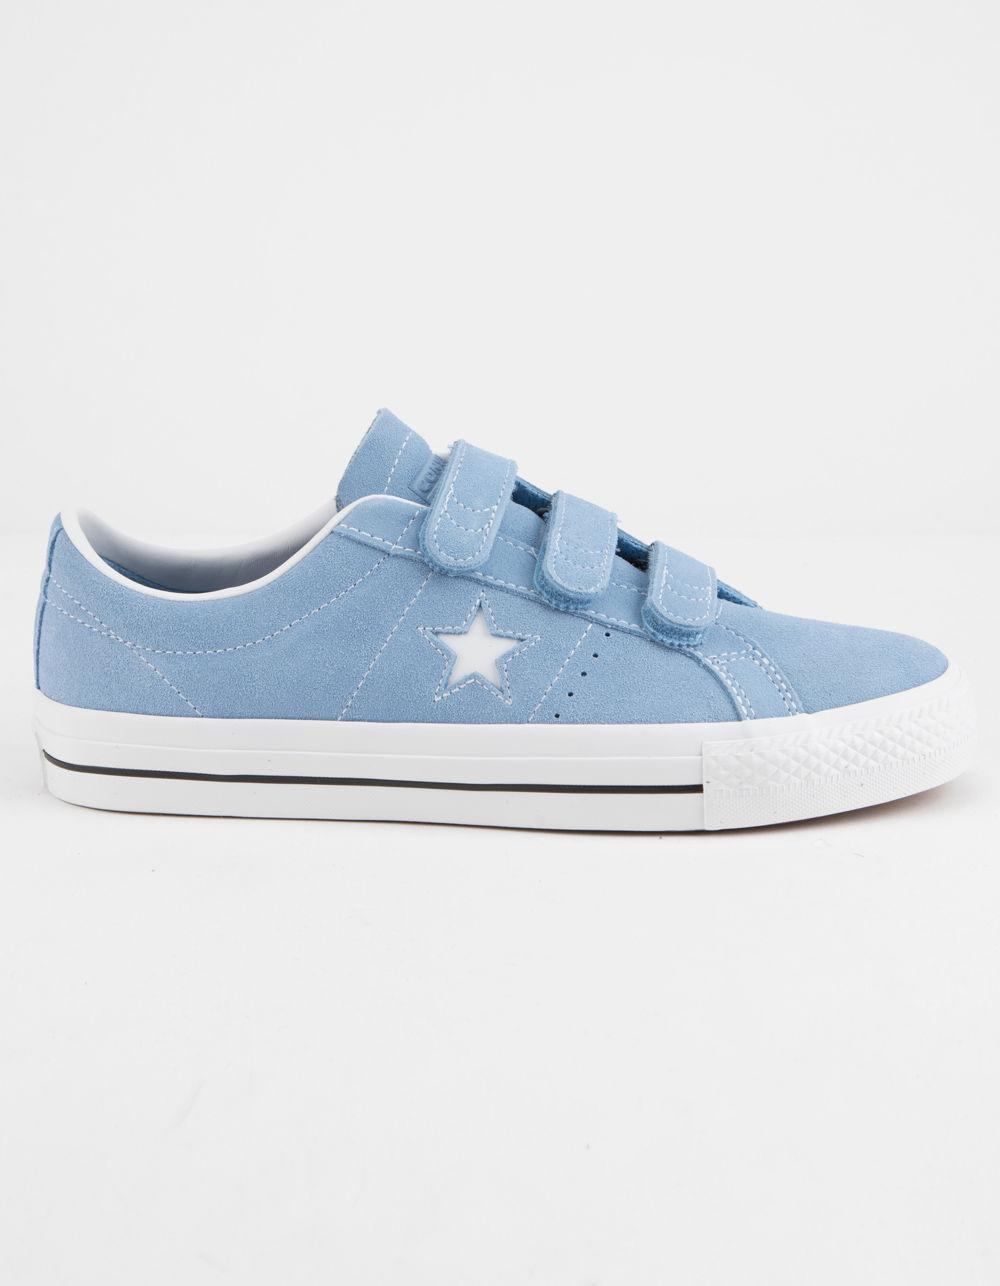 a989411d0bcf65 Lyst - Converse One Star Pro 3v Ox Light Blue   White Shoes in Blue ...